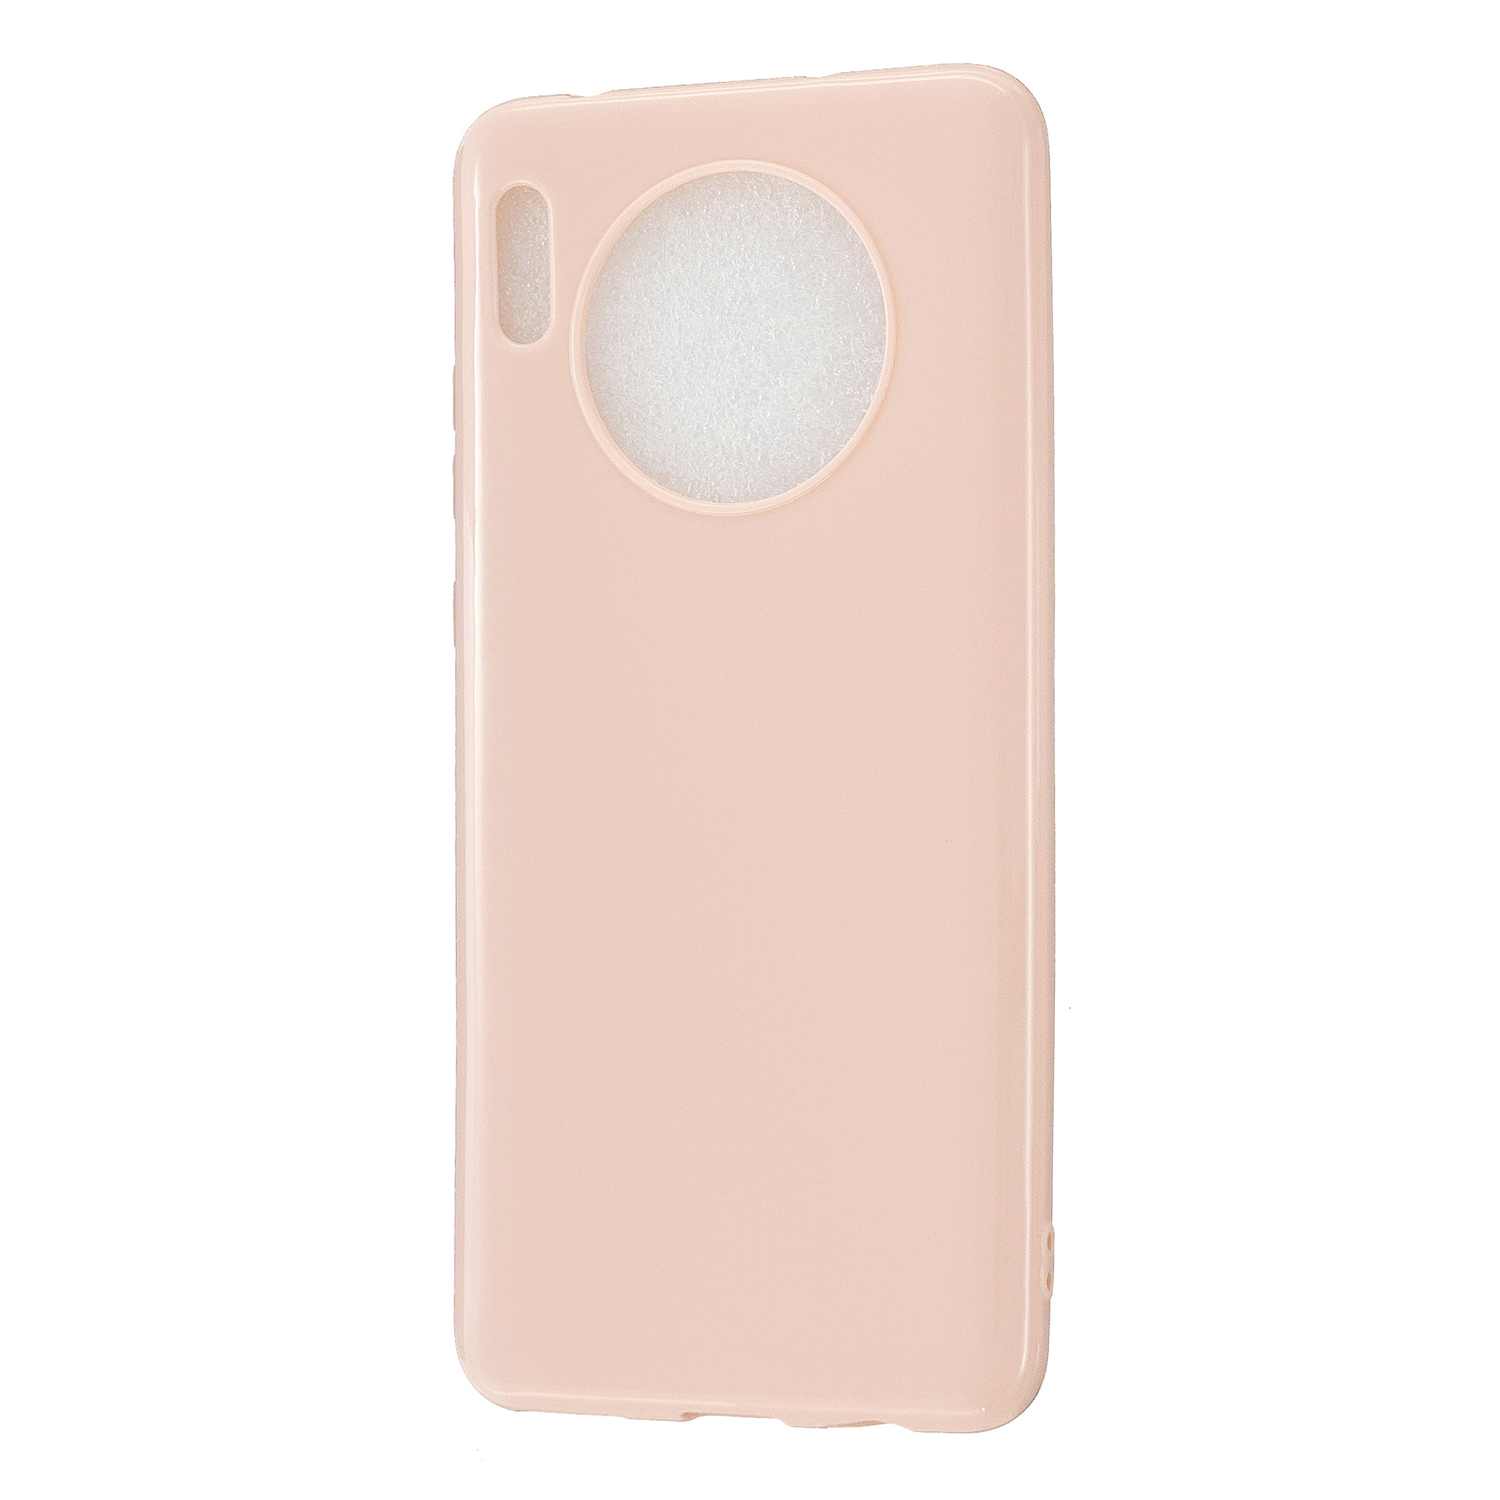 For HUAWEI Mate 30/30 Lite/30 Pro Cellphone Case Simple Profile Soft TPU Shock-Absorption Phone Cover Sakura pink